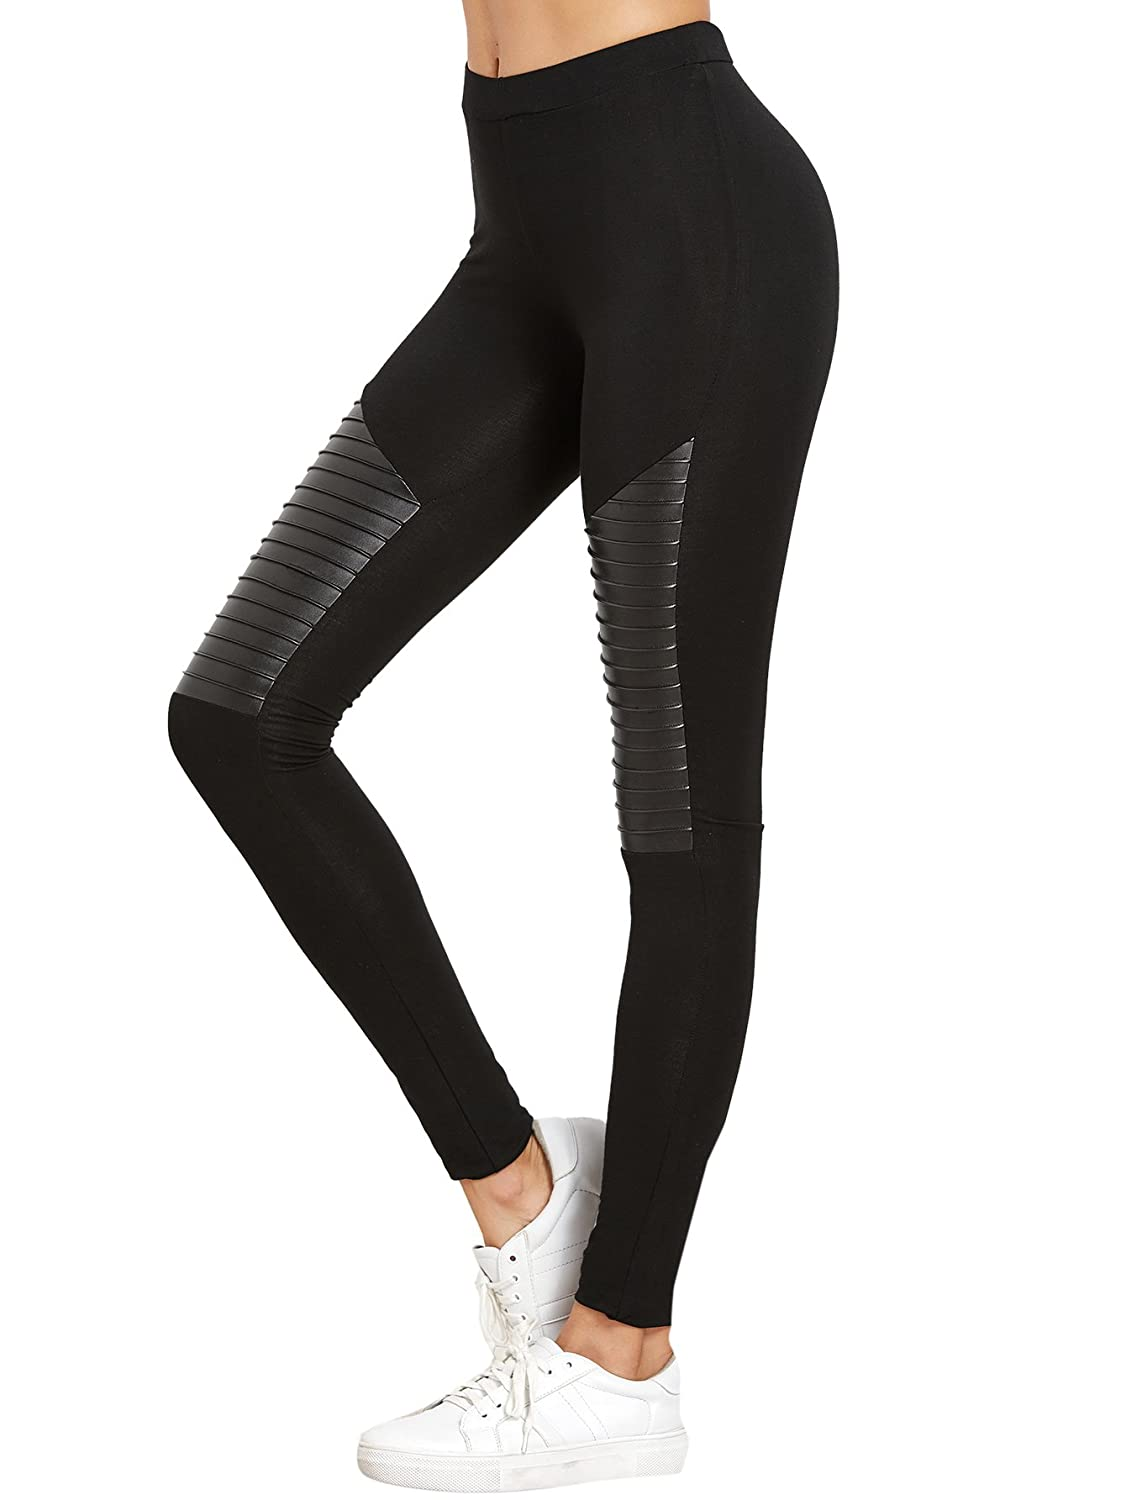 34015c1fd73 SweatyRocks Women s Faux Leather Inserted Leggings Outfit Yoga Tights at  Amazon Women s Clothing store